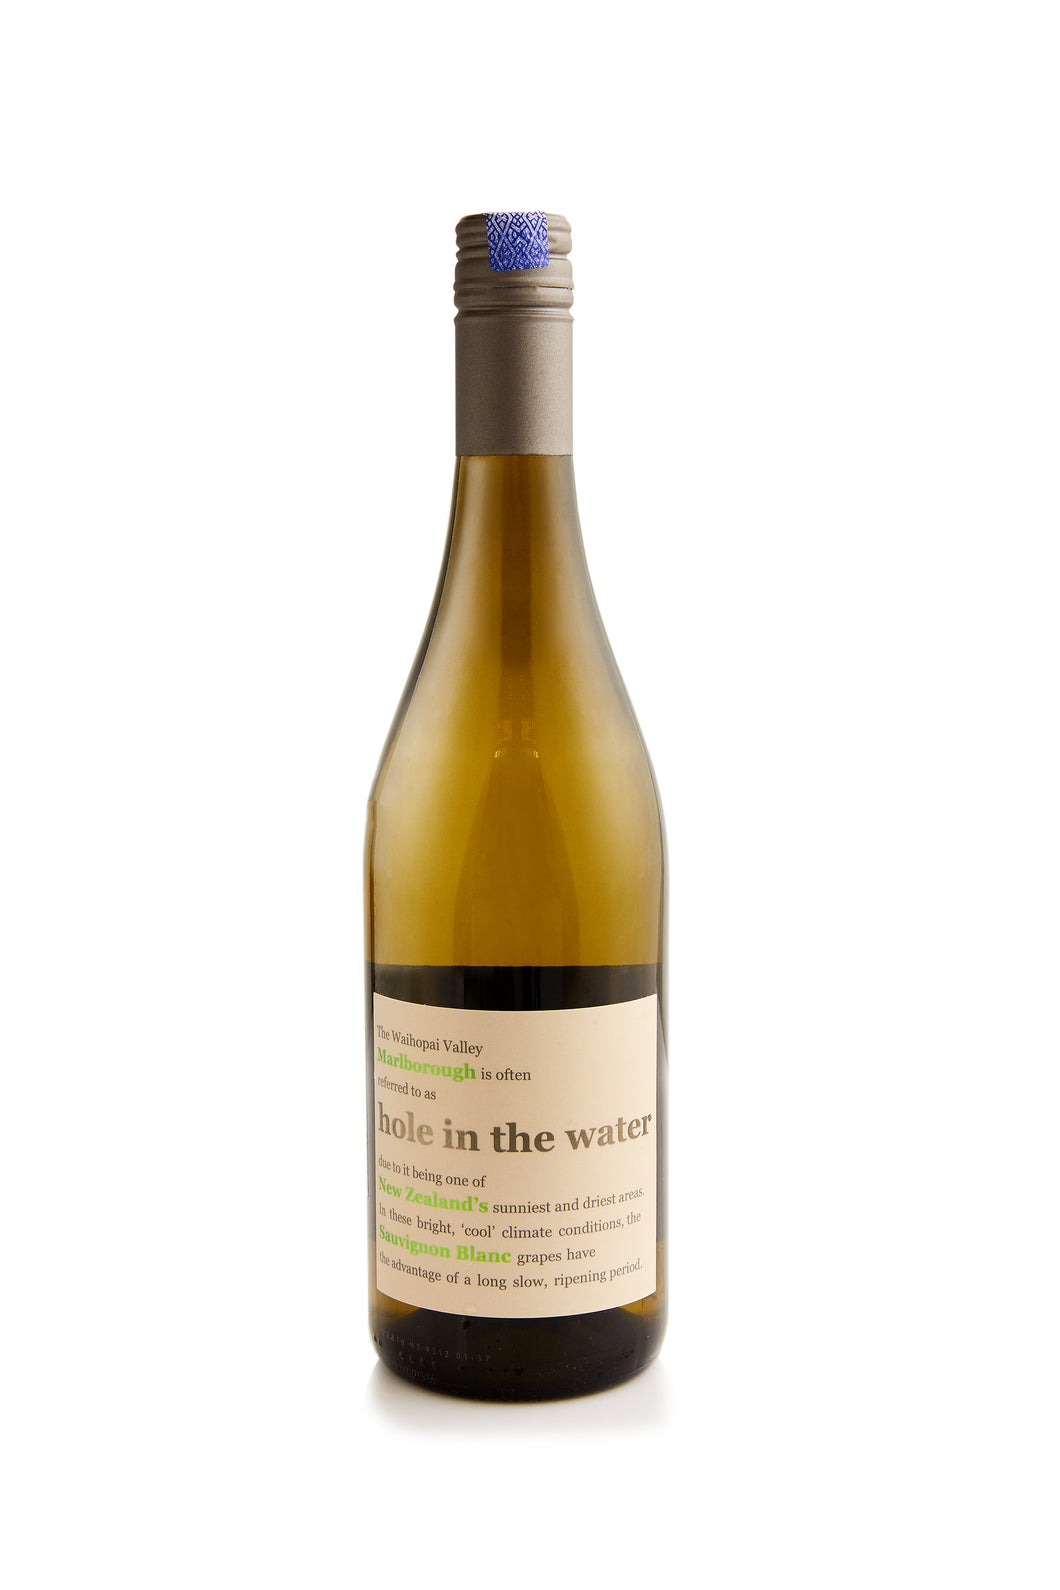 Sauvignon Blanc, Hole in the Water, Marlborough, New Zealand